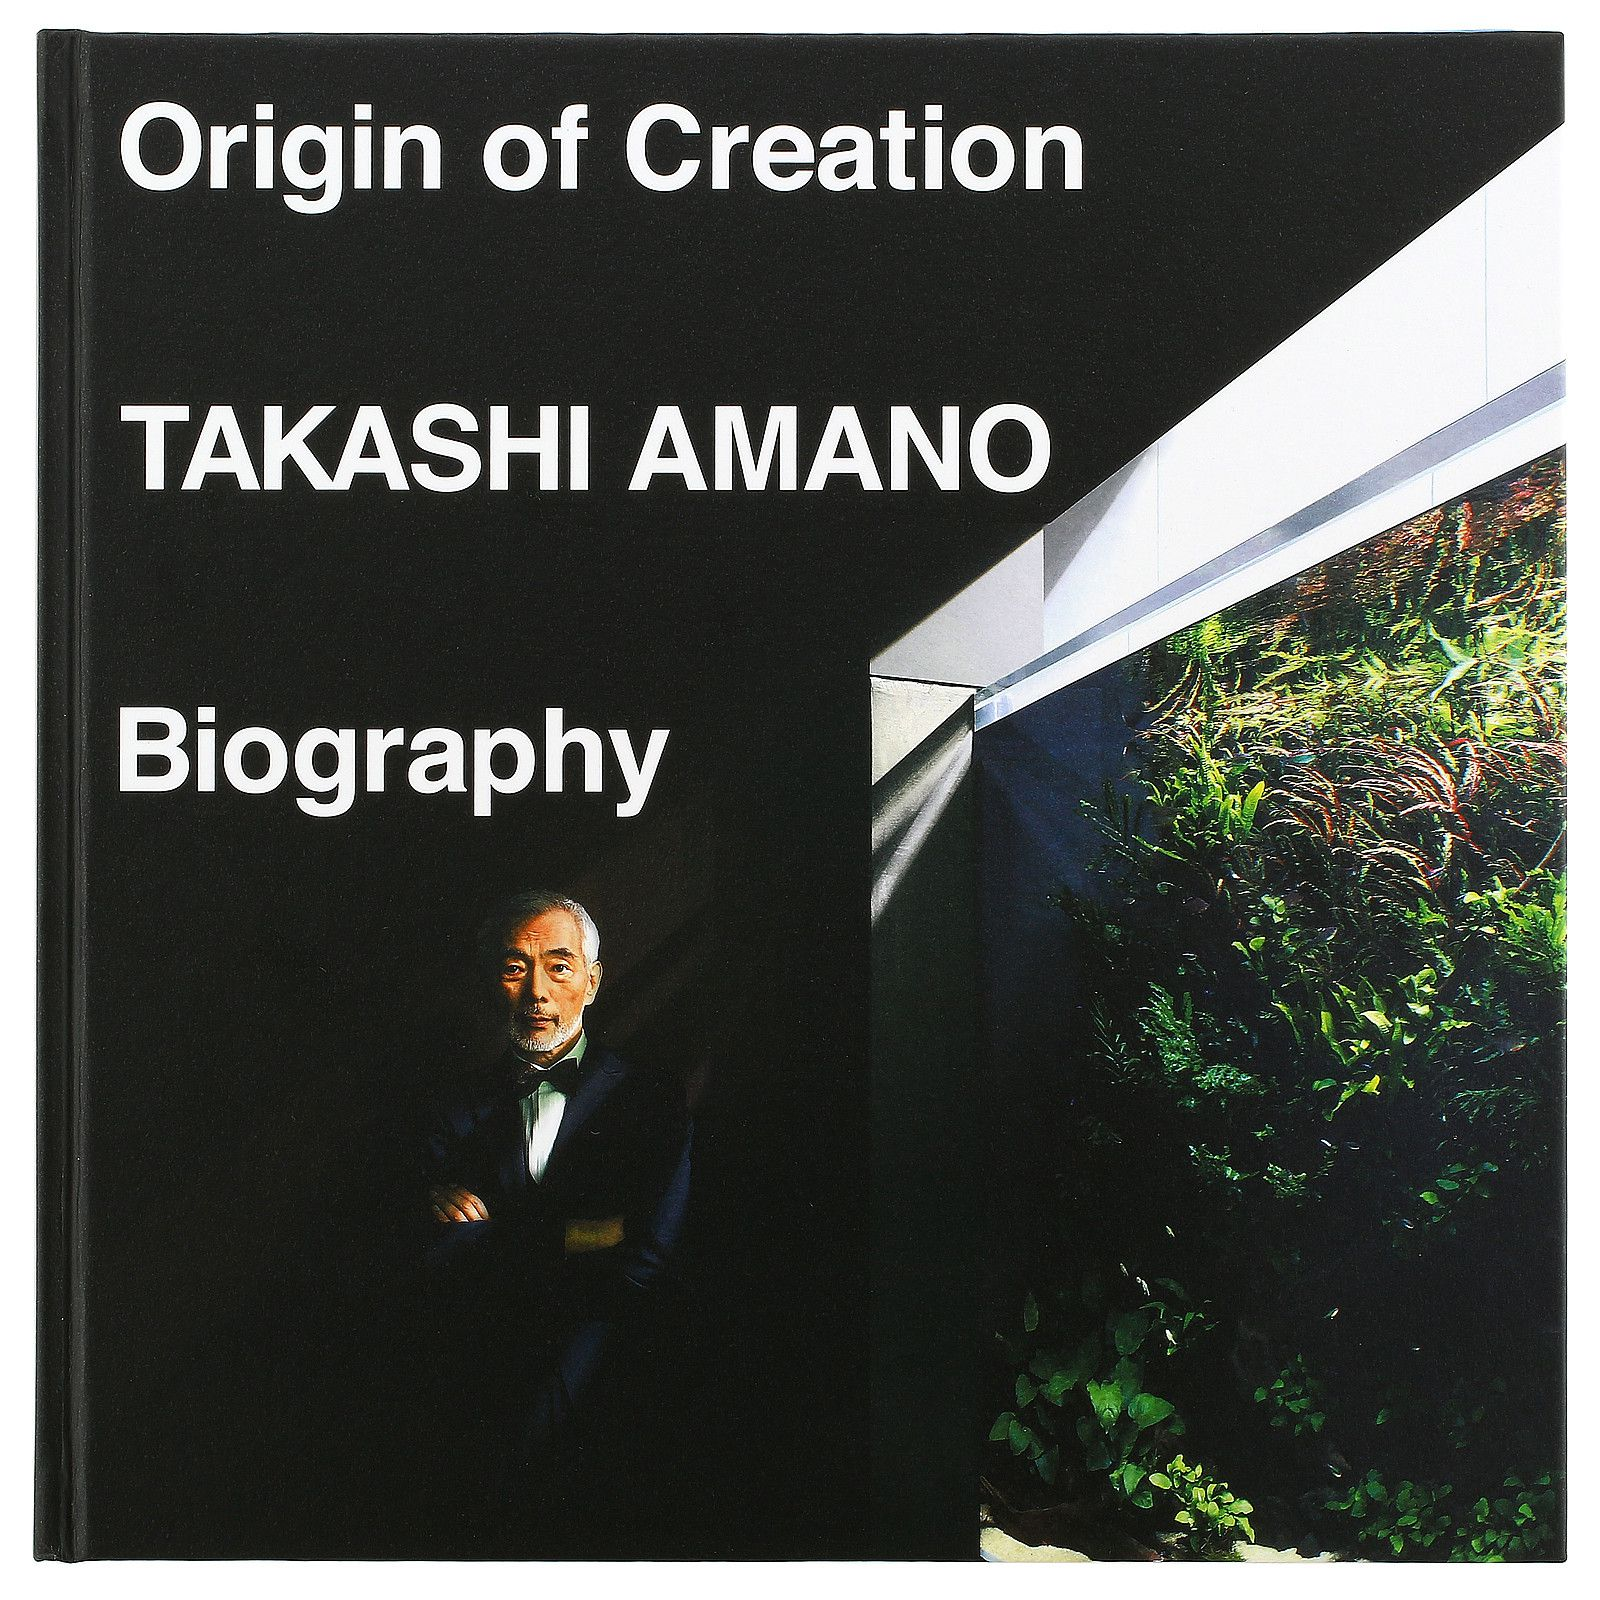 ADA - Takashi Amano Biography - Origin of Creation